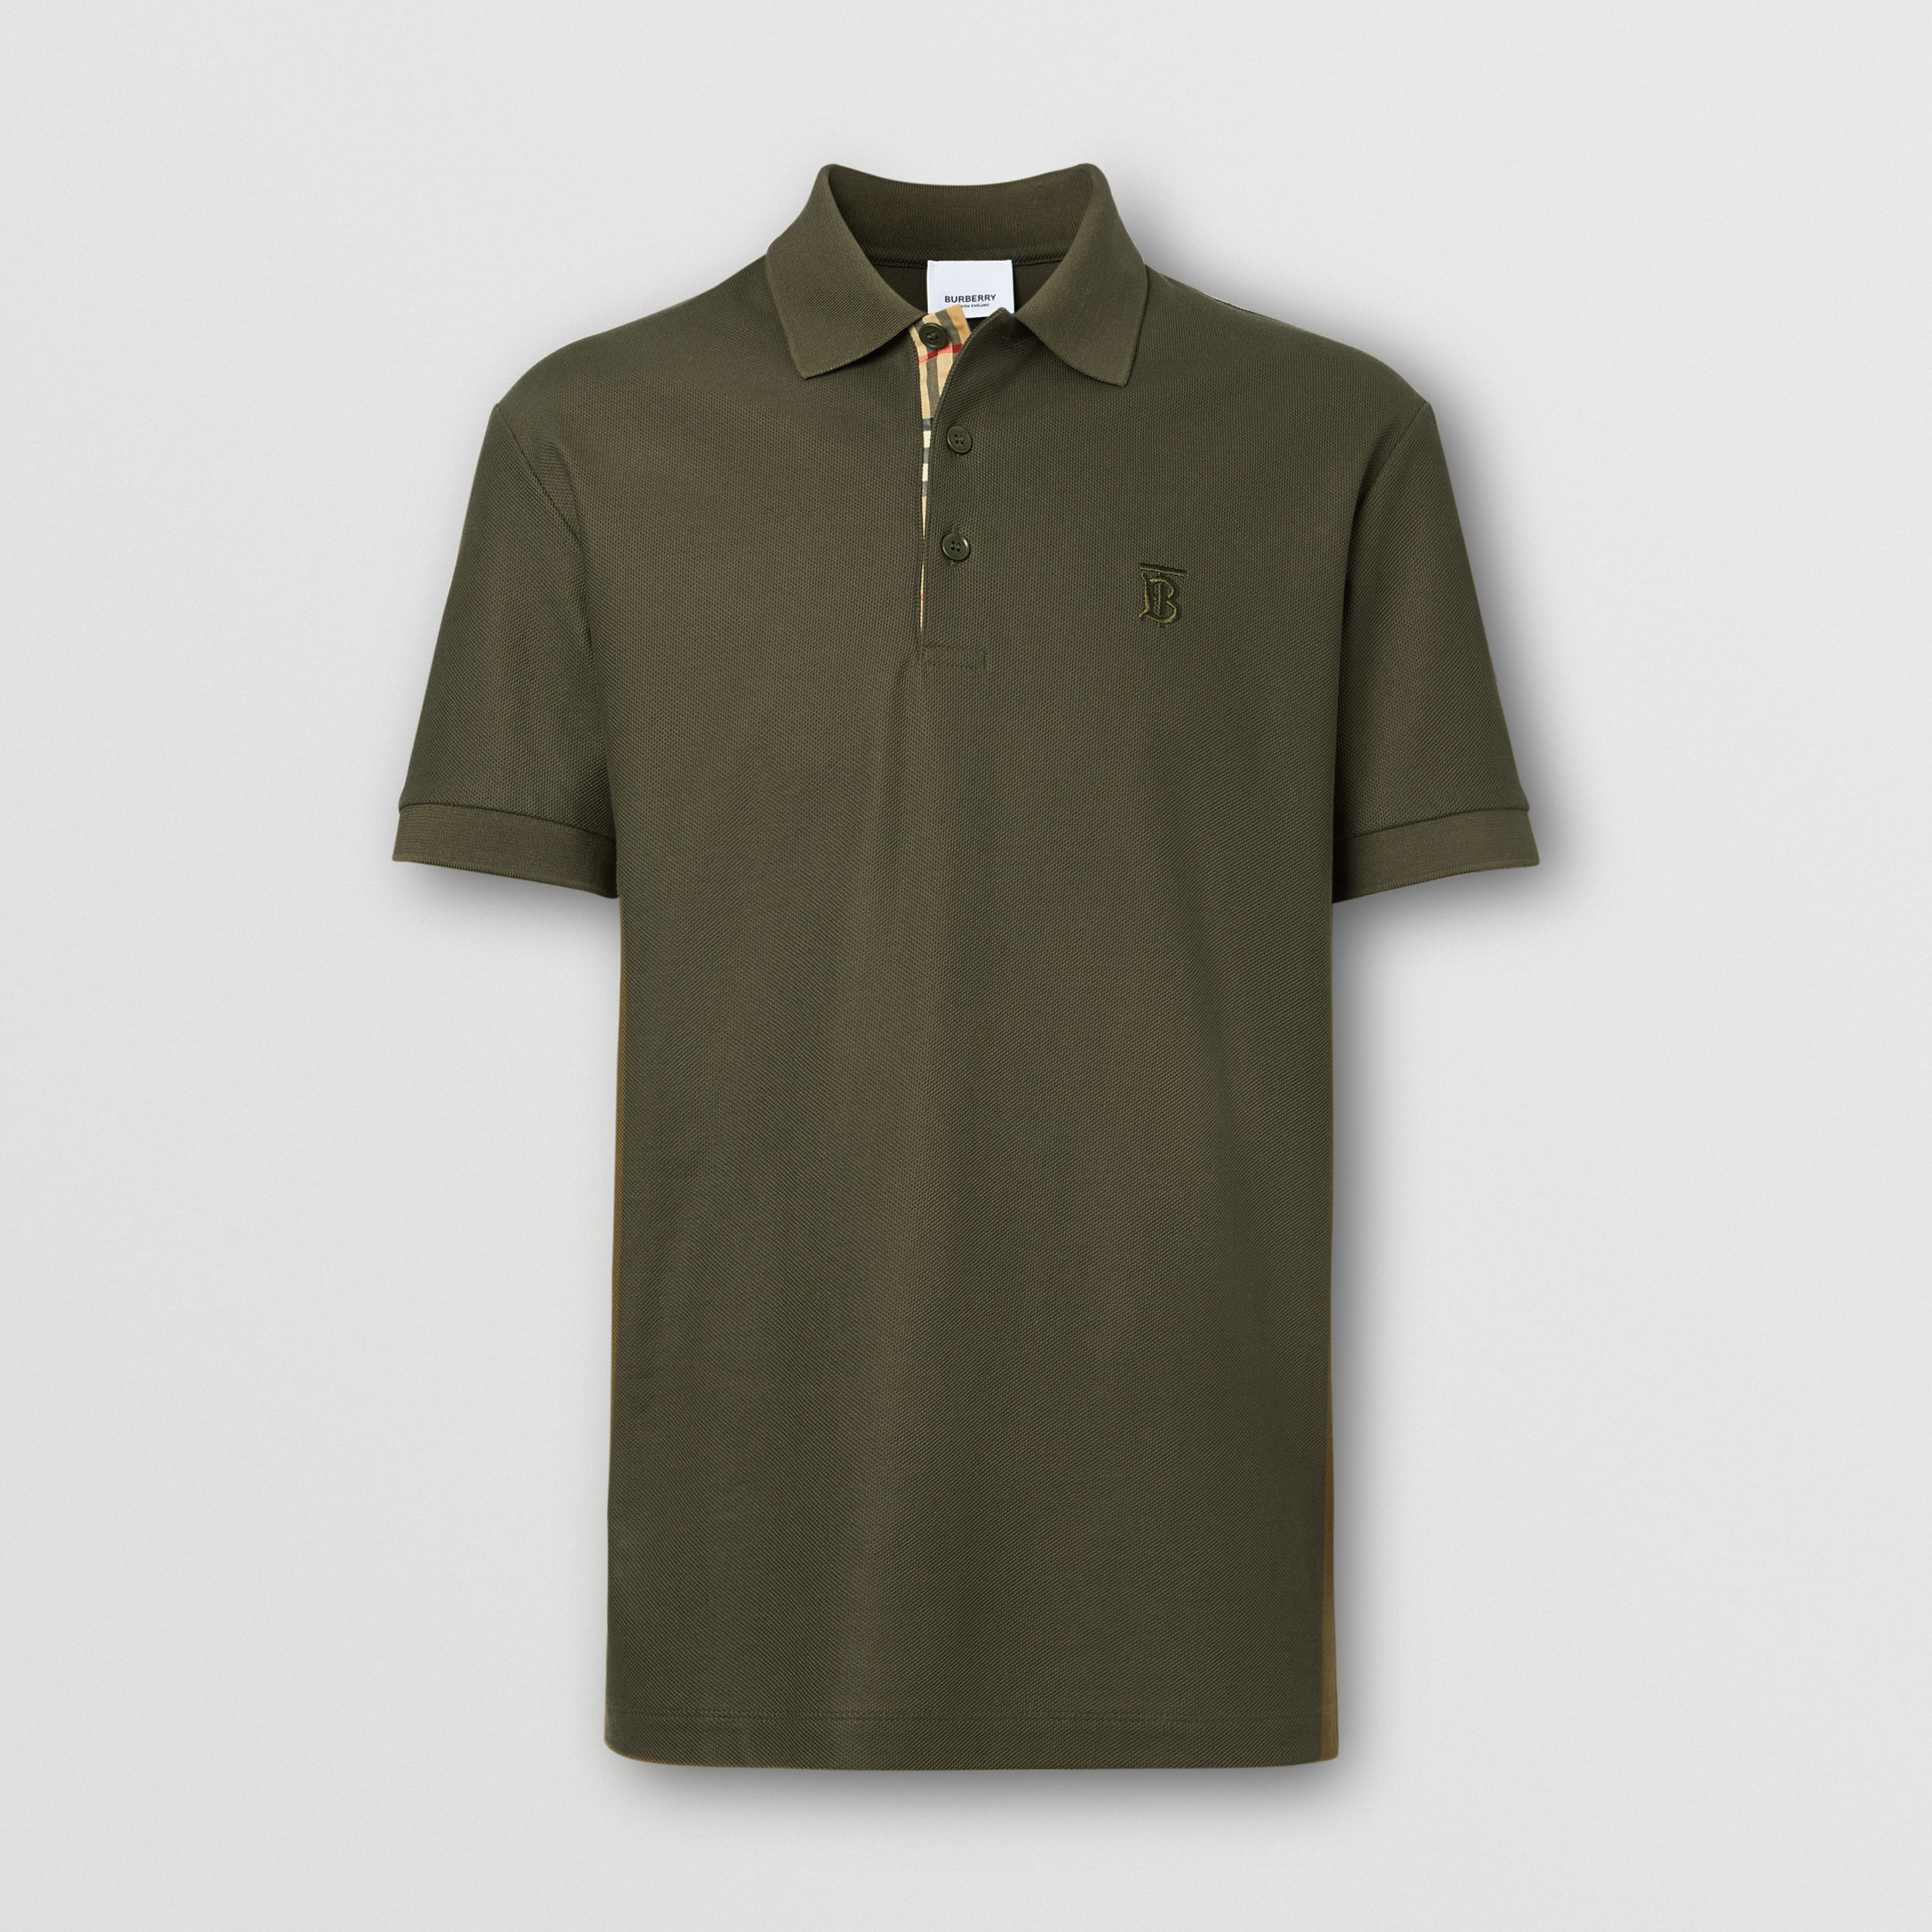 Monogram Motif Cotton Piqué Polo Shirt in Dark Olive - Men | Burberry Hong Kong S.A.R. - 4